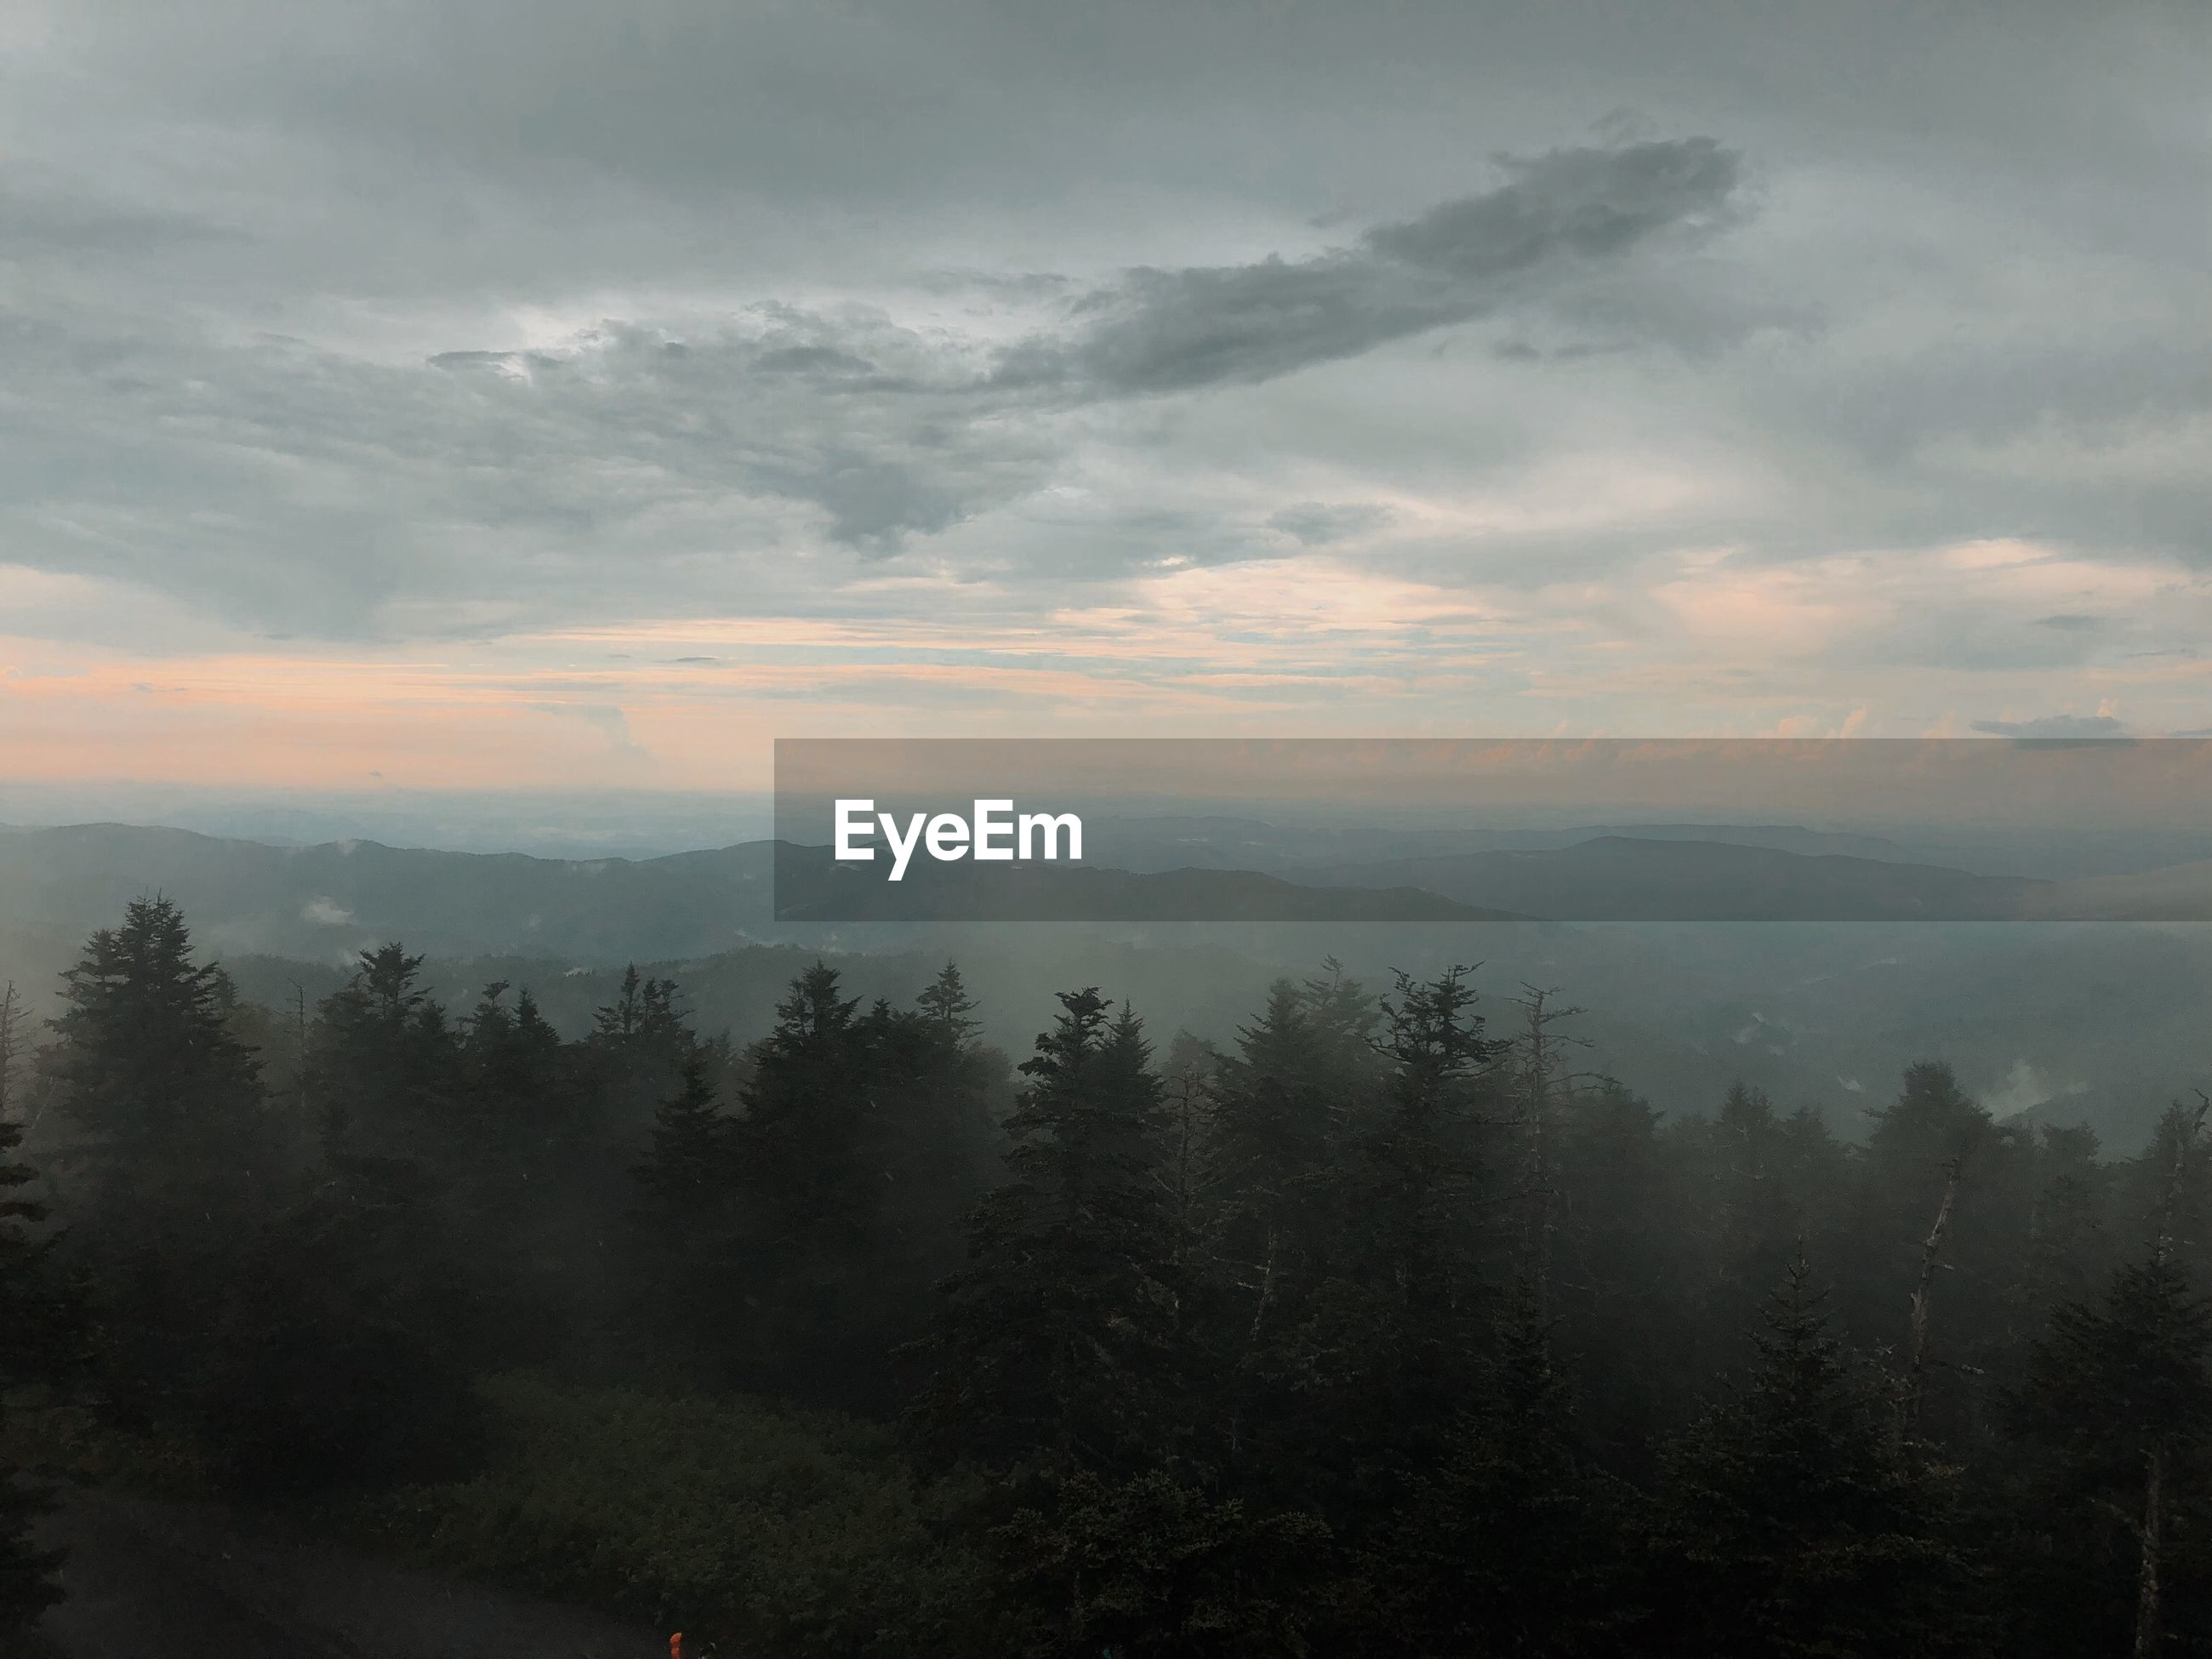 SCENIC VIEW OF TREES AND MOUNTAINS AGAINST SKY DURING FOGGY WEATHER